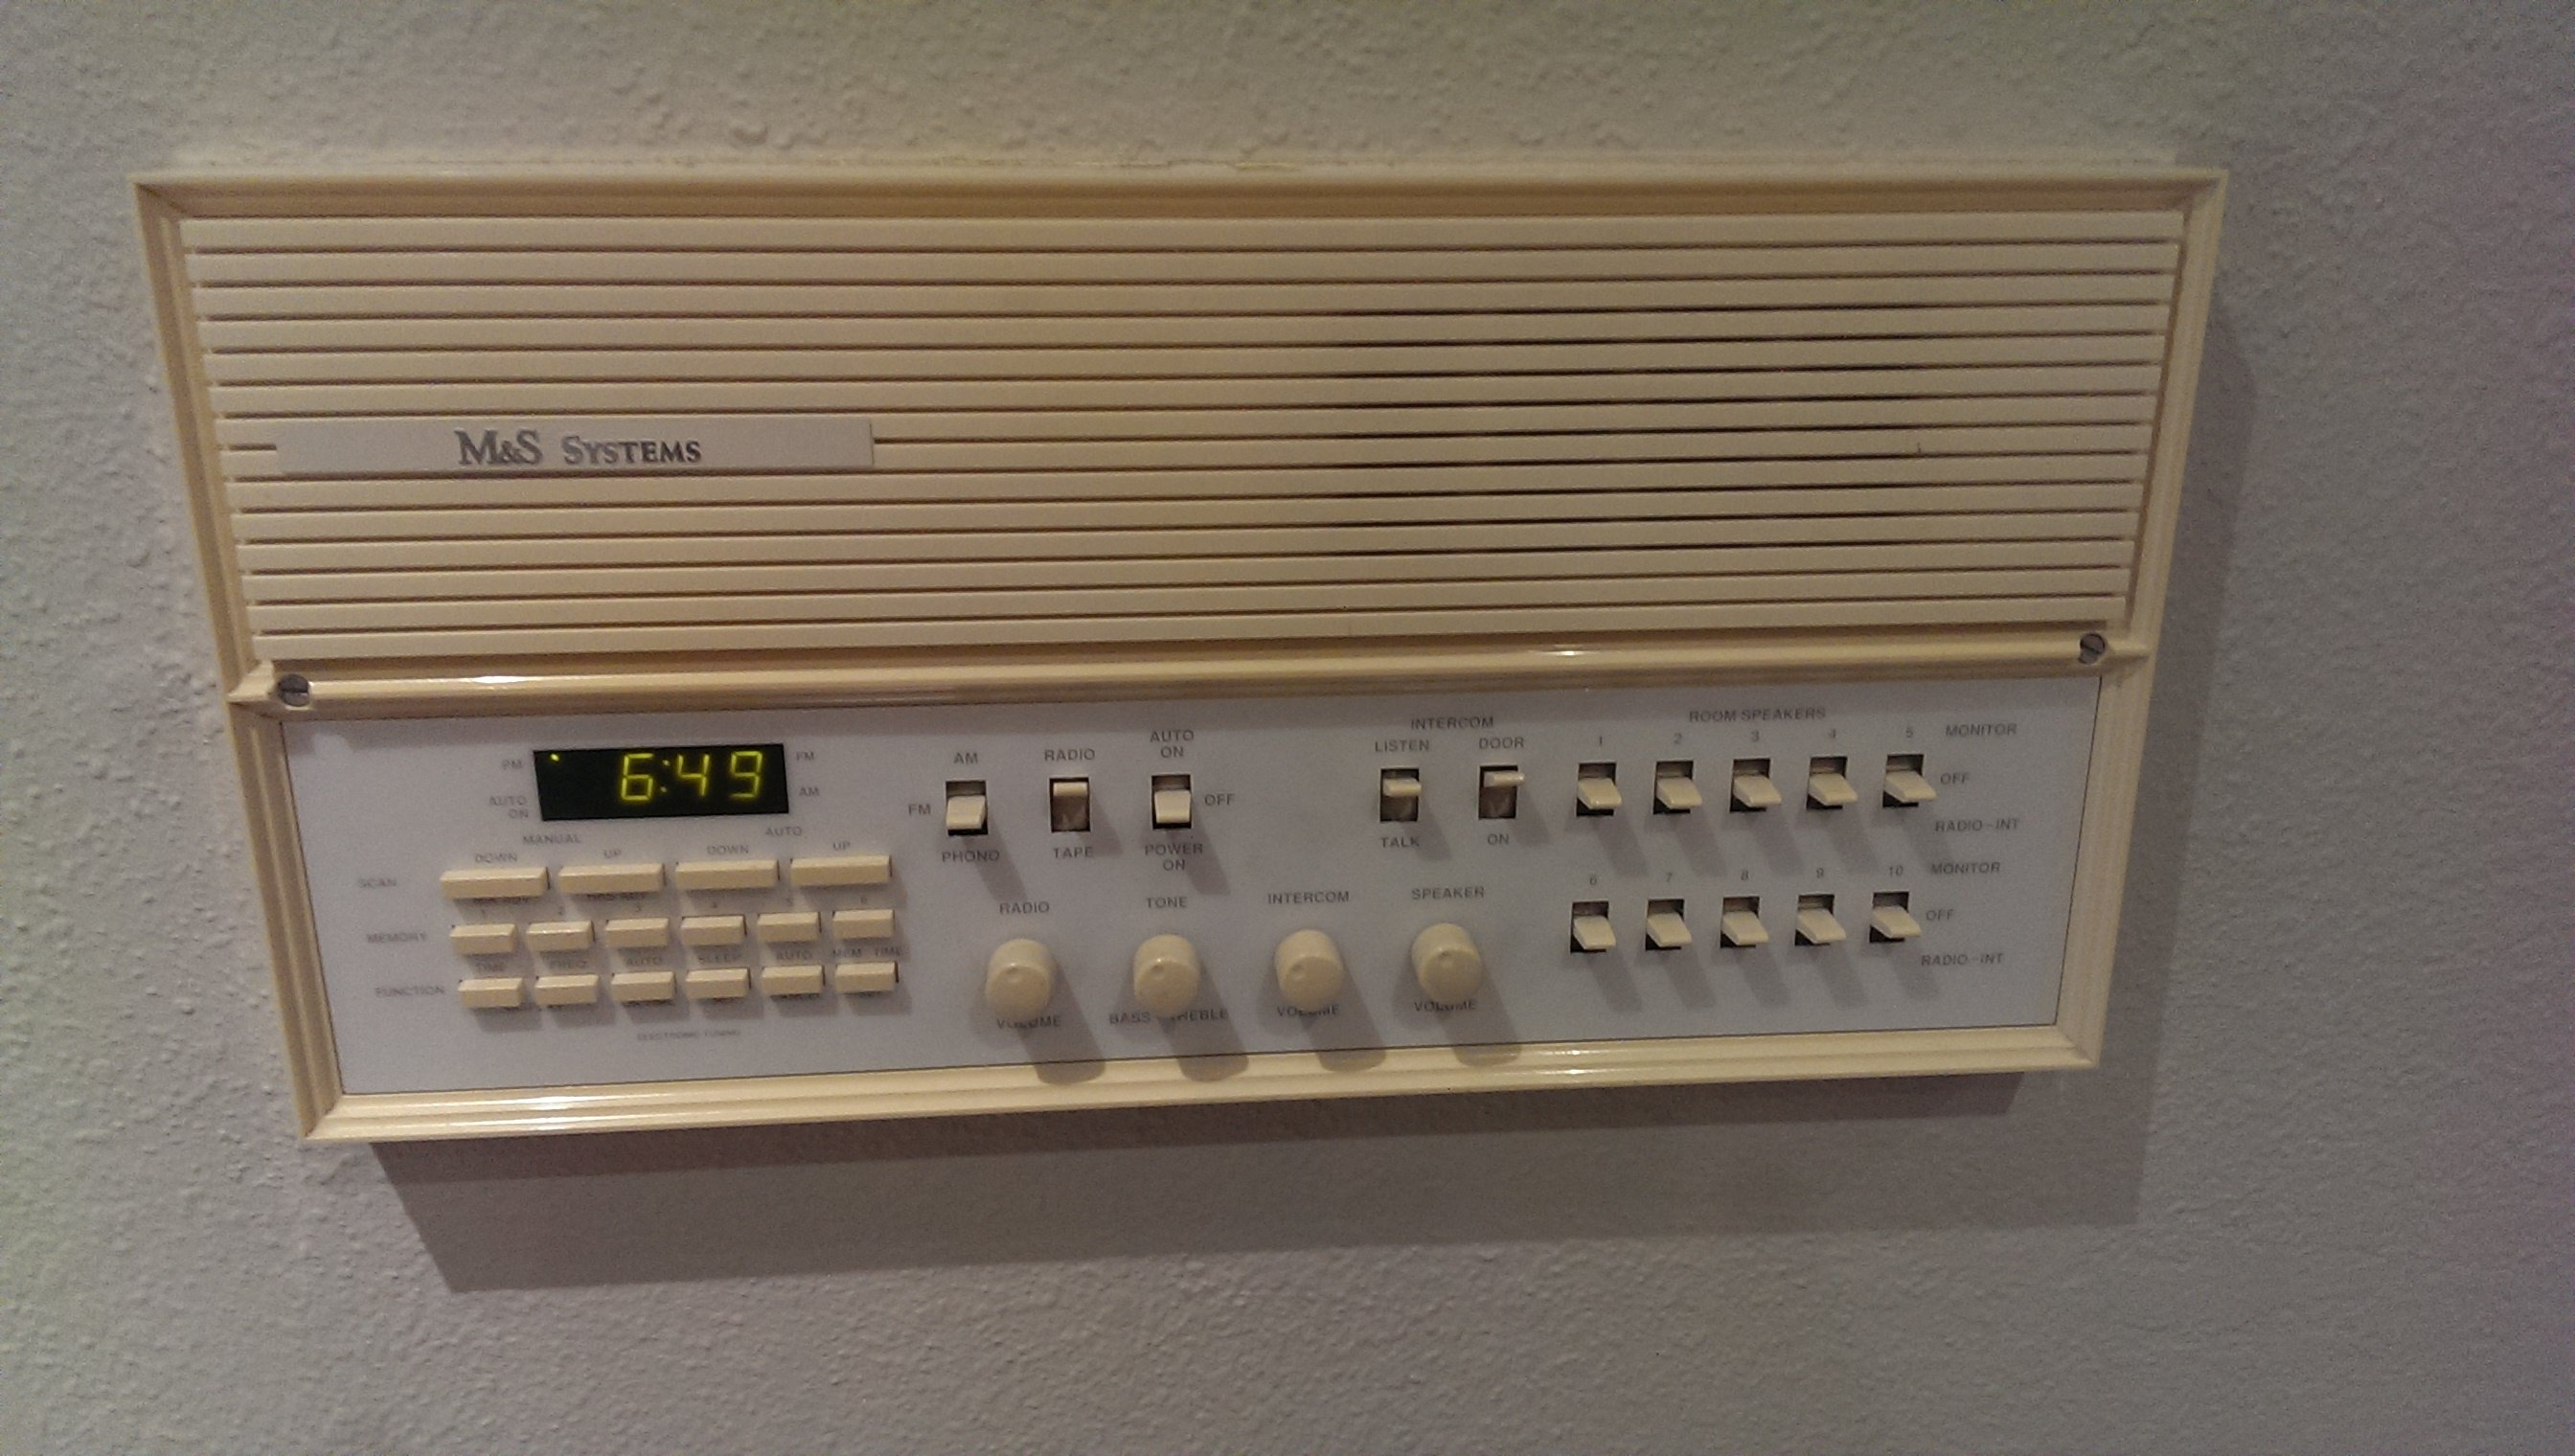 LL m&s systems intercom system upgrade replacement avs forum home  at bakdesigns.co